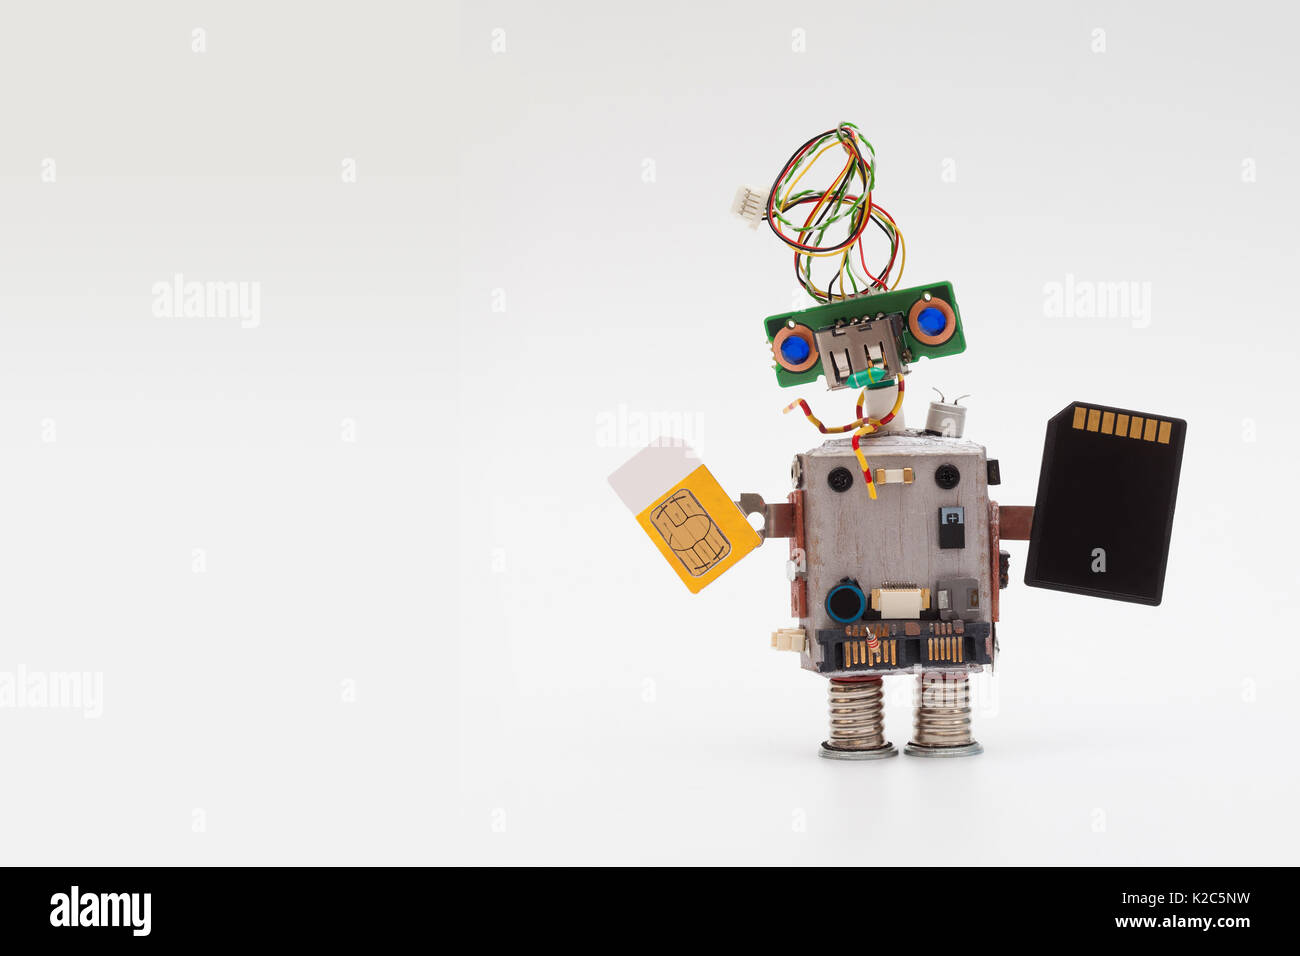 Retro style robot concept with yellow sim card and black microchip. Circuits socket toy mechanism, funny head, colored blue eyes. Copy text, light gradient background - Stock Image